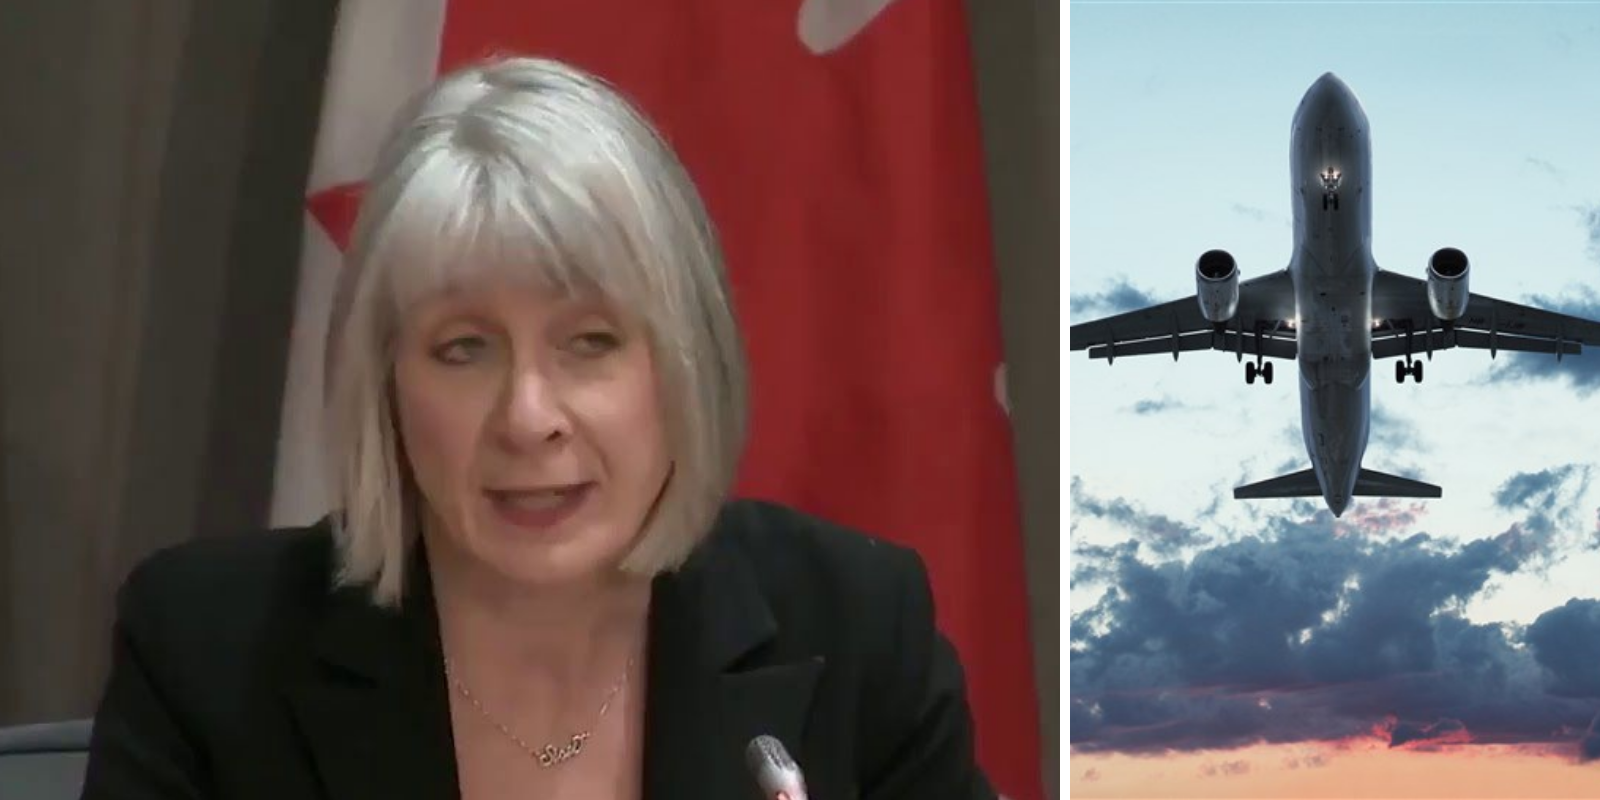 Trudeau health minister broke her own rules to fly across Canada